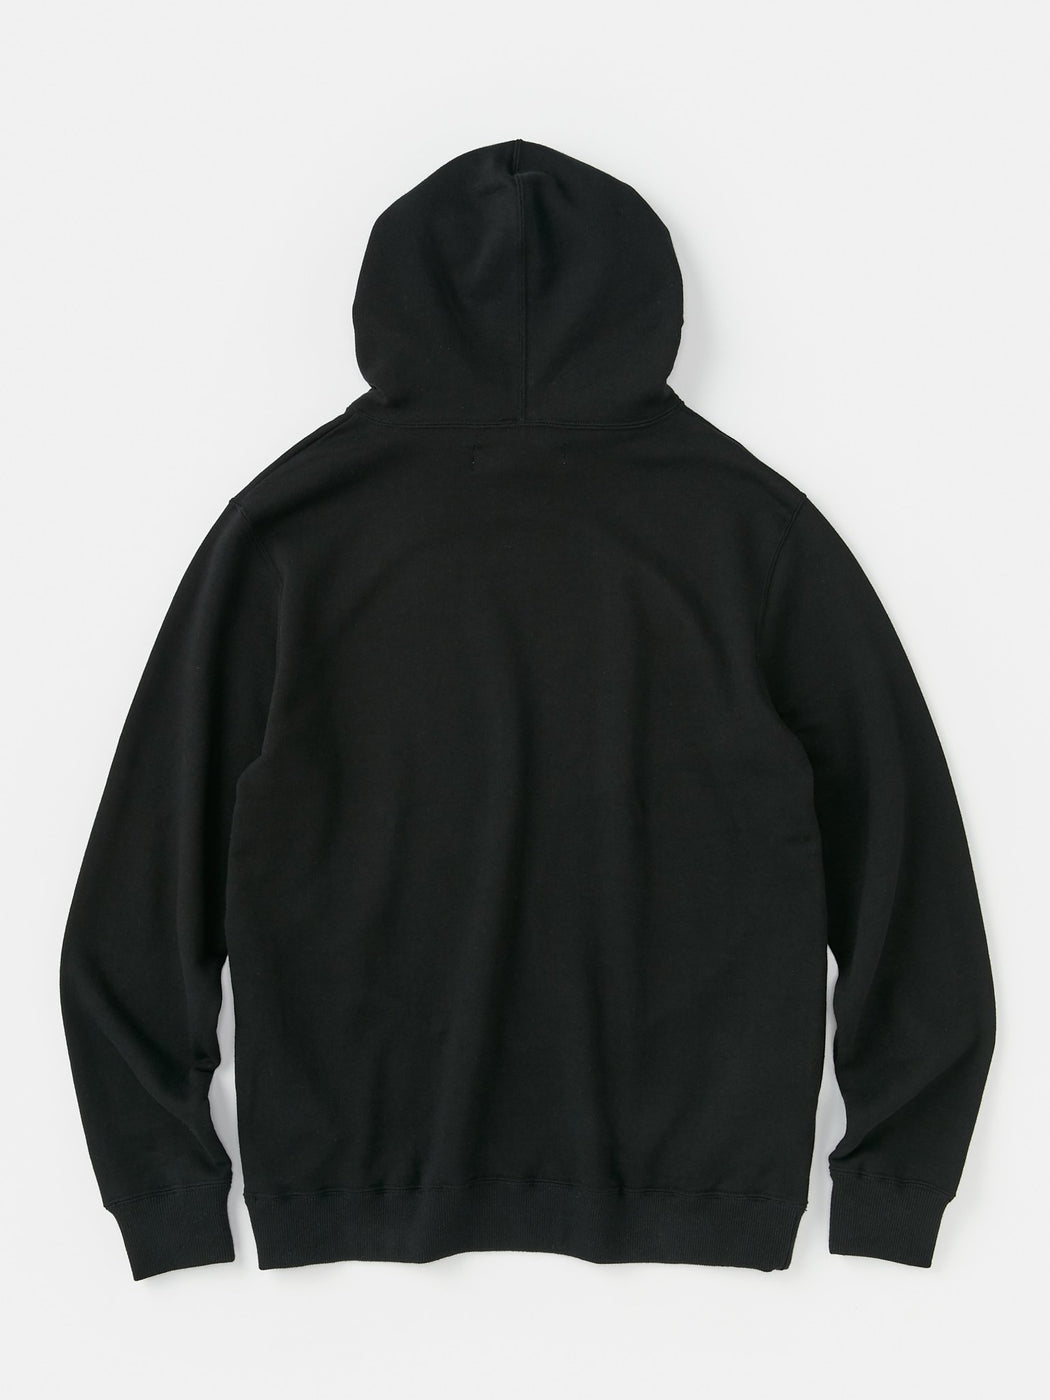 ALOYE Color Block Hoodie Black-Chacoal Gray